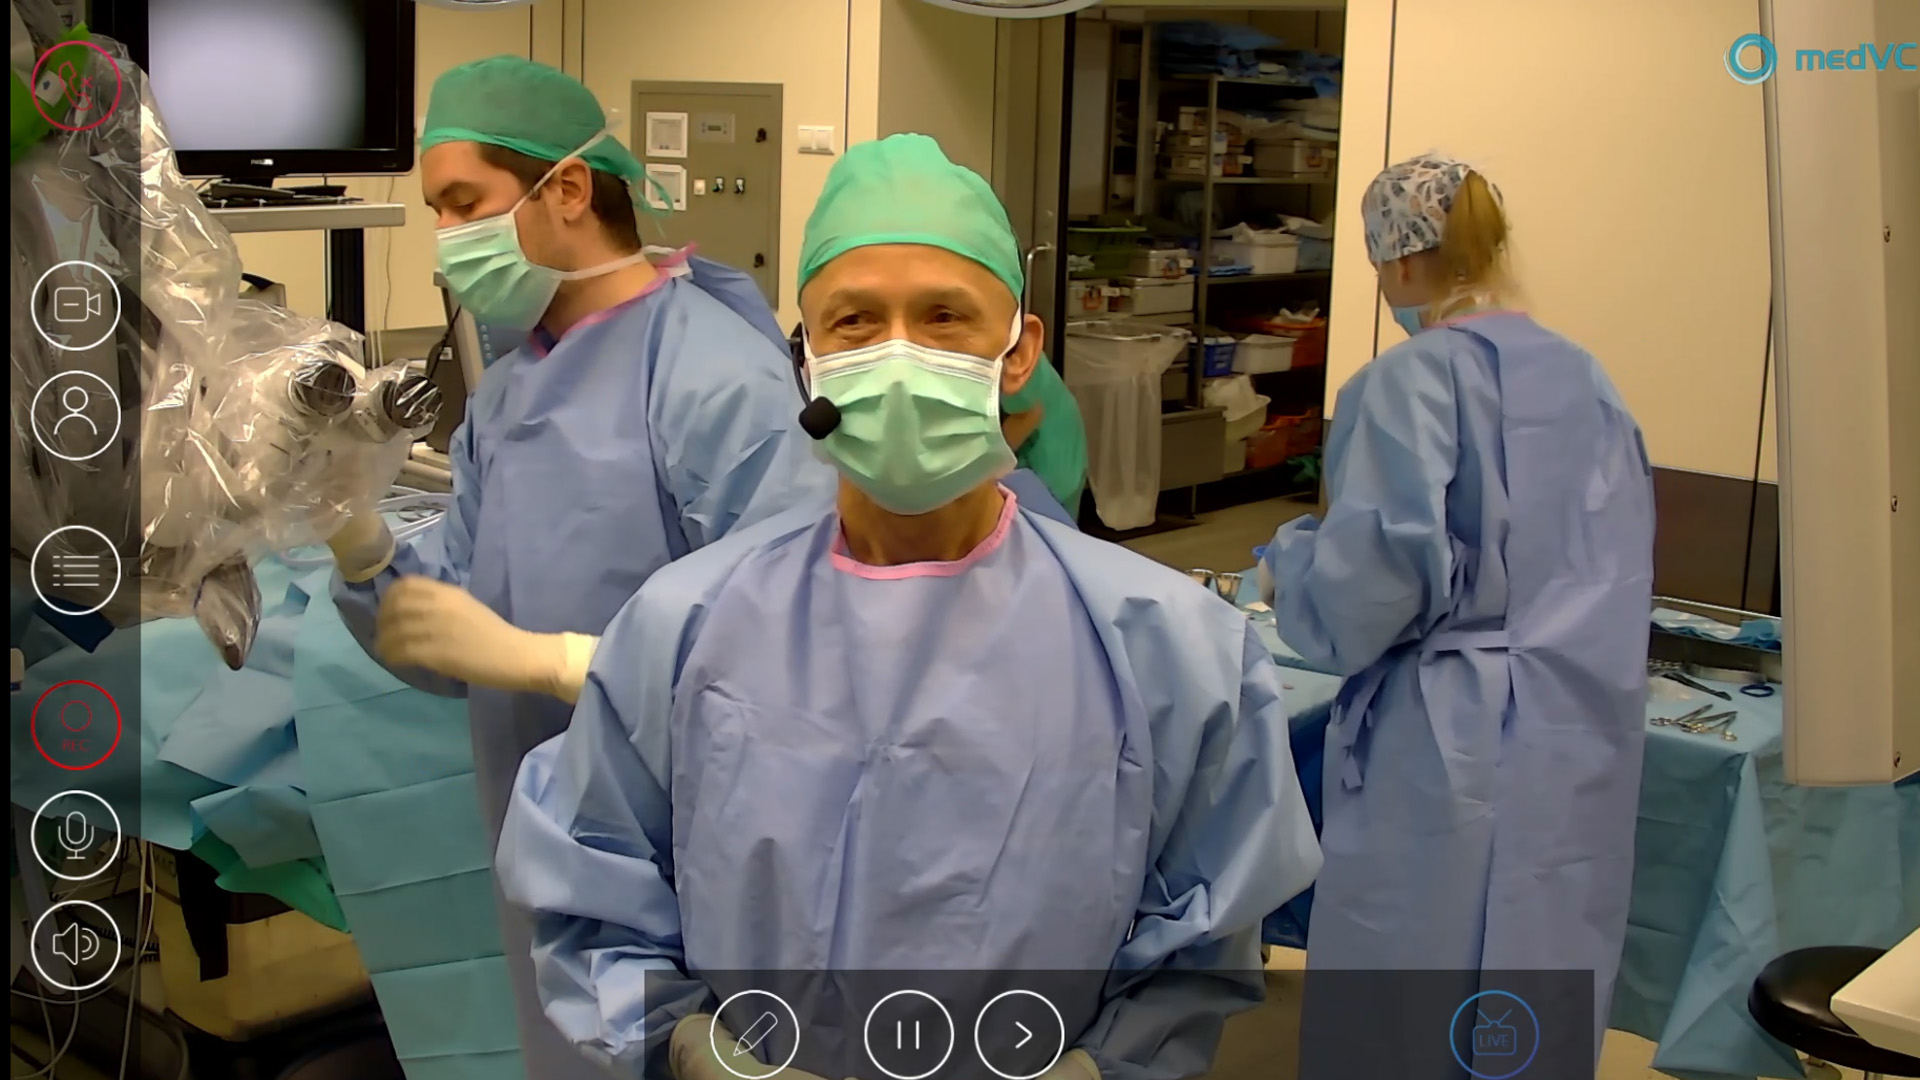 Wideo: Orthopaedic Live Surgery Broadcast 2019